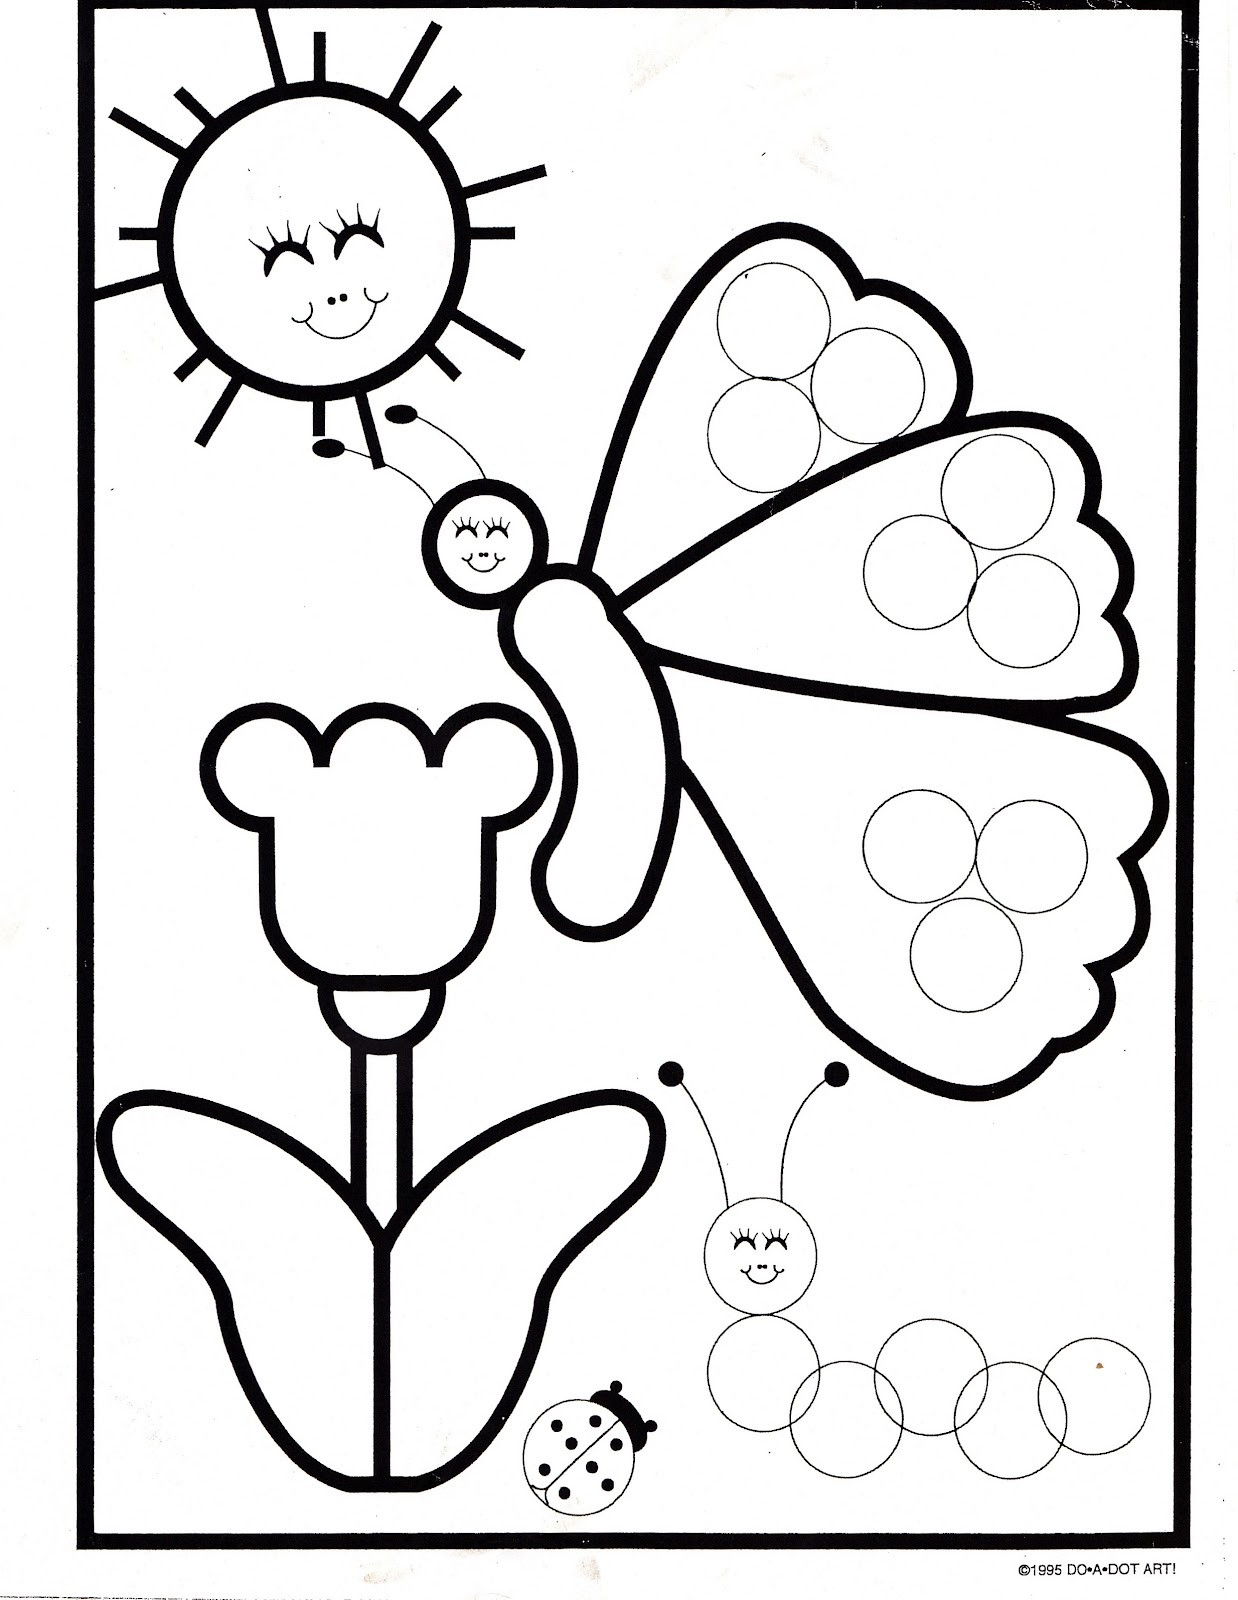 Dot to Dot Art Printables 7 Best Of Caterpillar Dot Art Printables Do A Dot